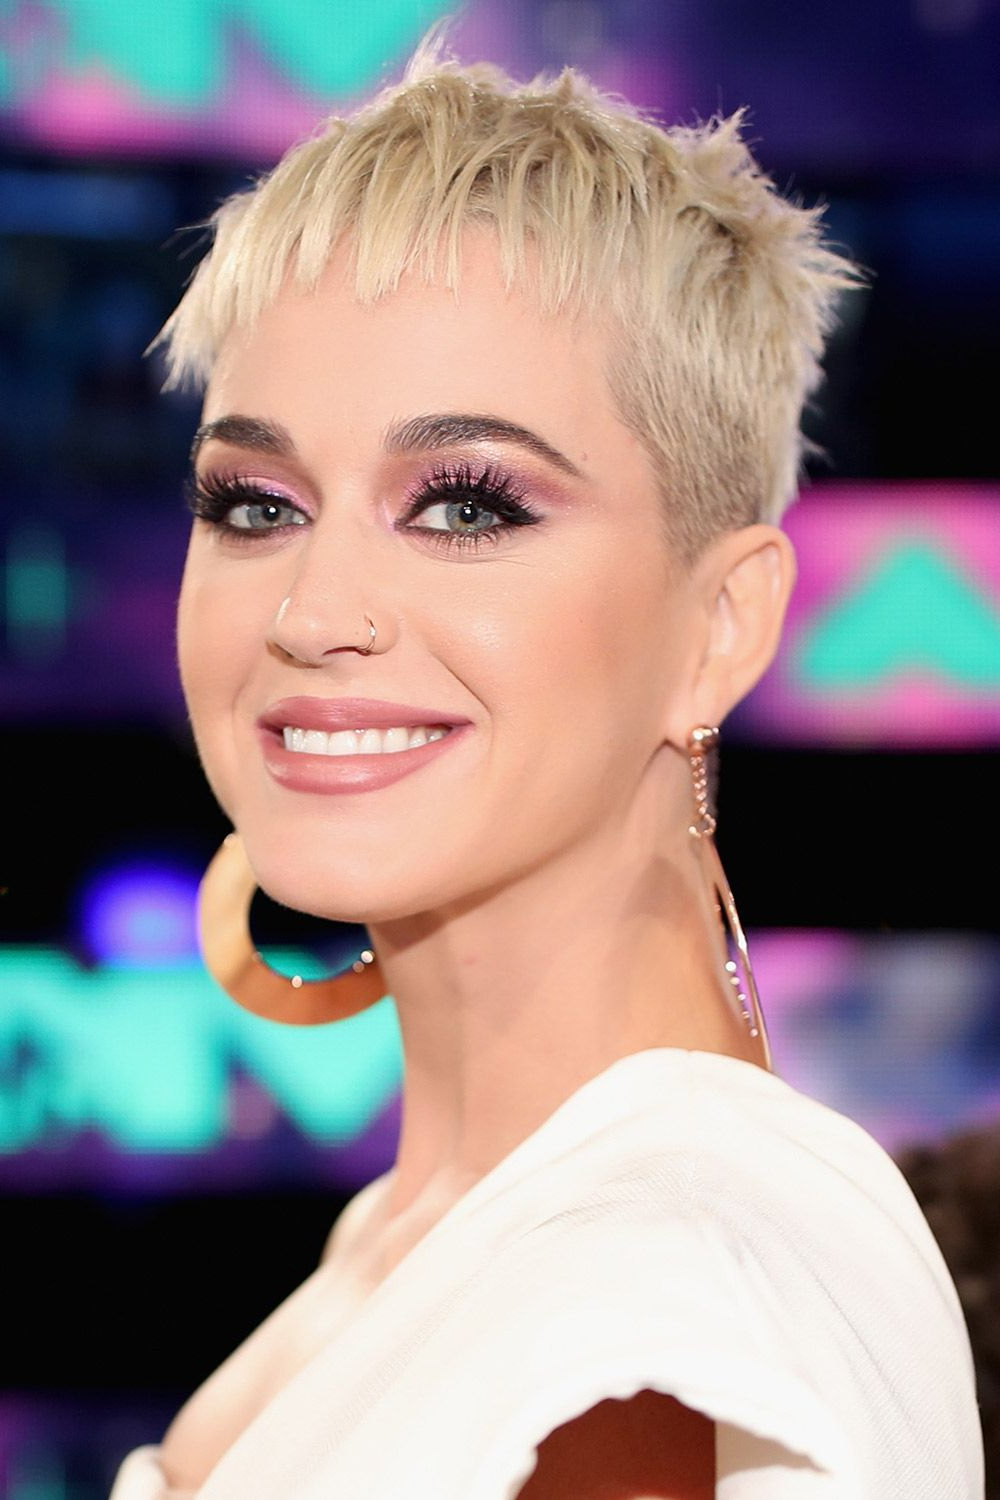 65 Best Short Hairstyles, Haircuts, And Short Hair Ideas For 2018 Regarding Cute Celebrity Short Haircuts (View 6 of 25)